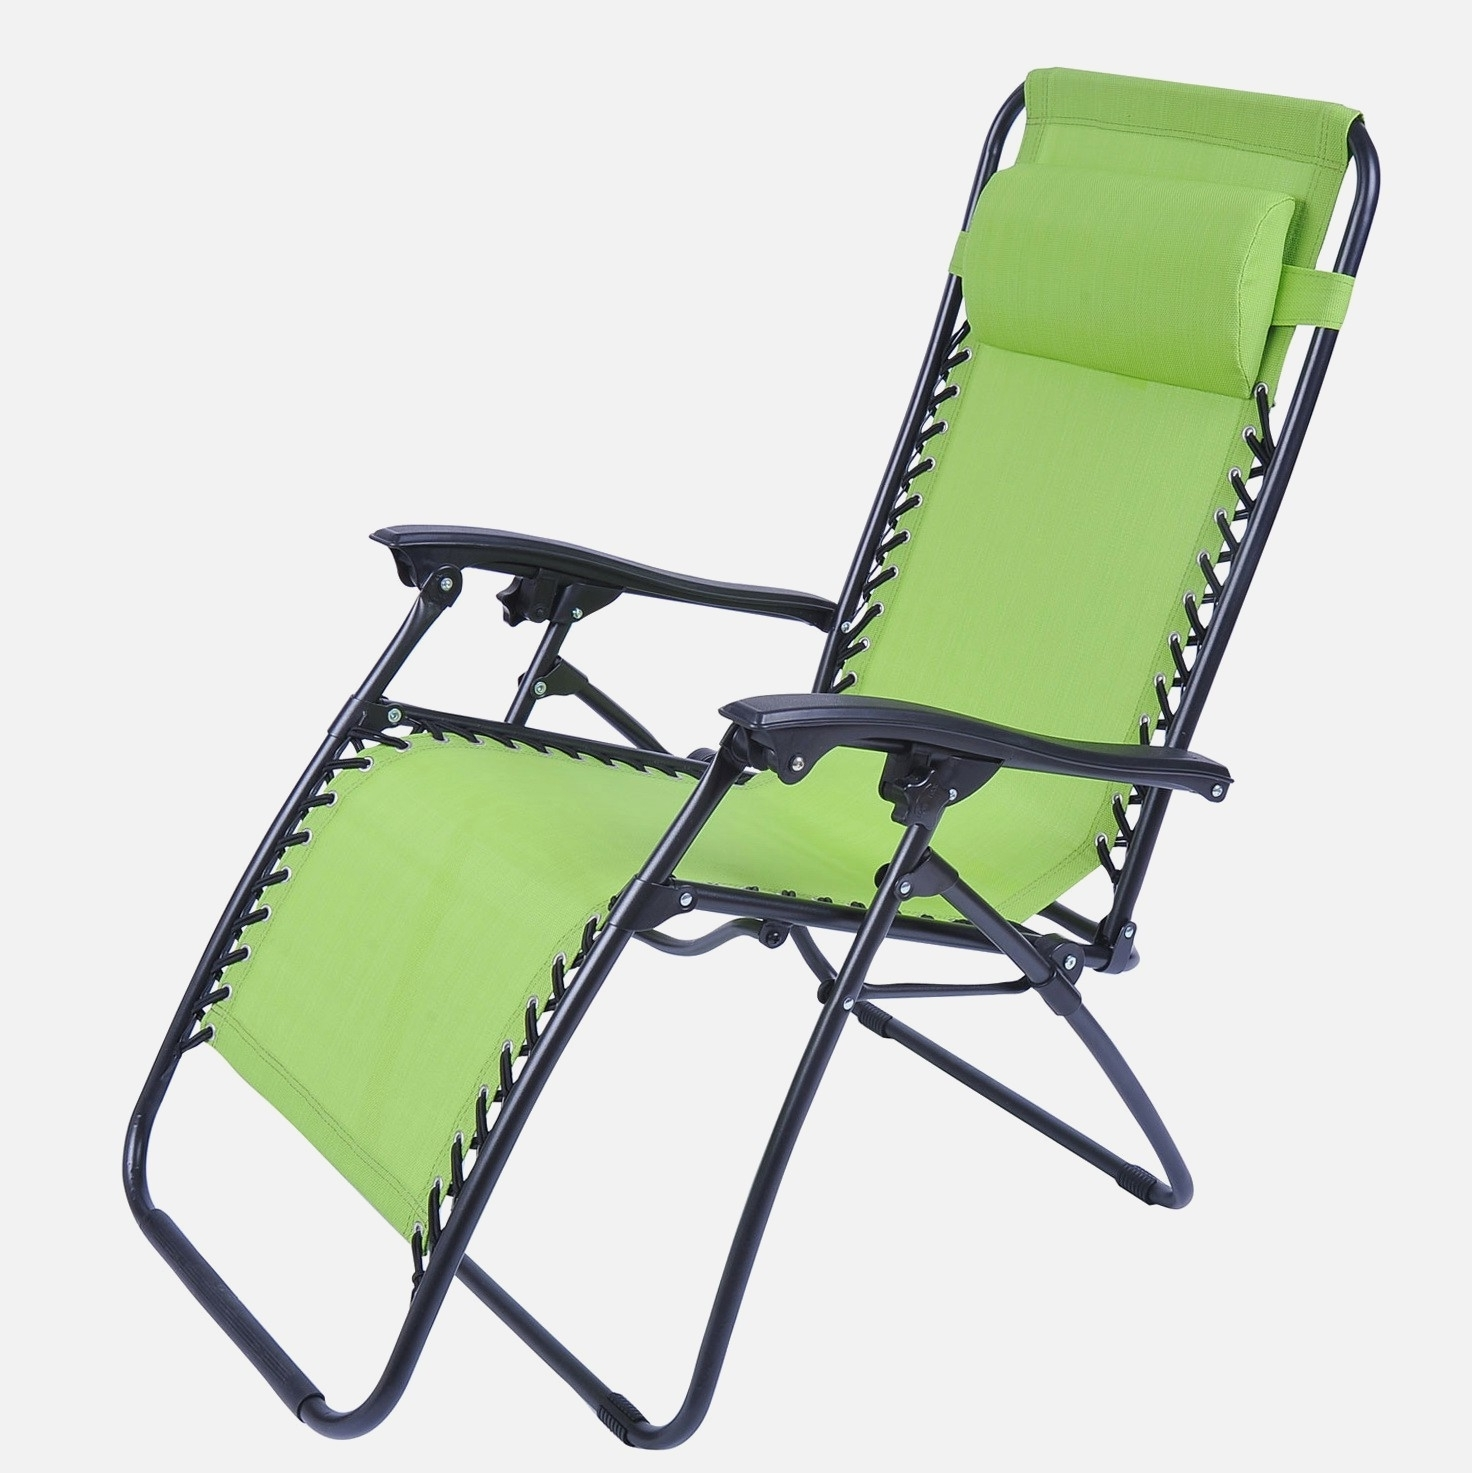 Latest Jelly Chaise Lounge Chairs Within Outdoor : Cheap Lawn Chairs Plastic Lounge Chairs Indoor Wooden (View 2 of 15)